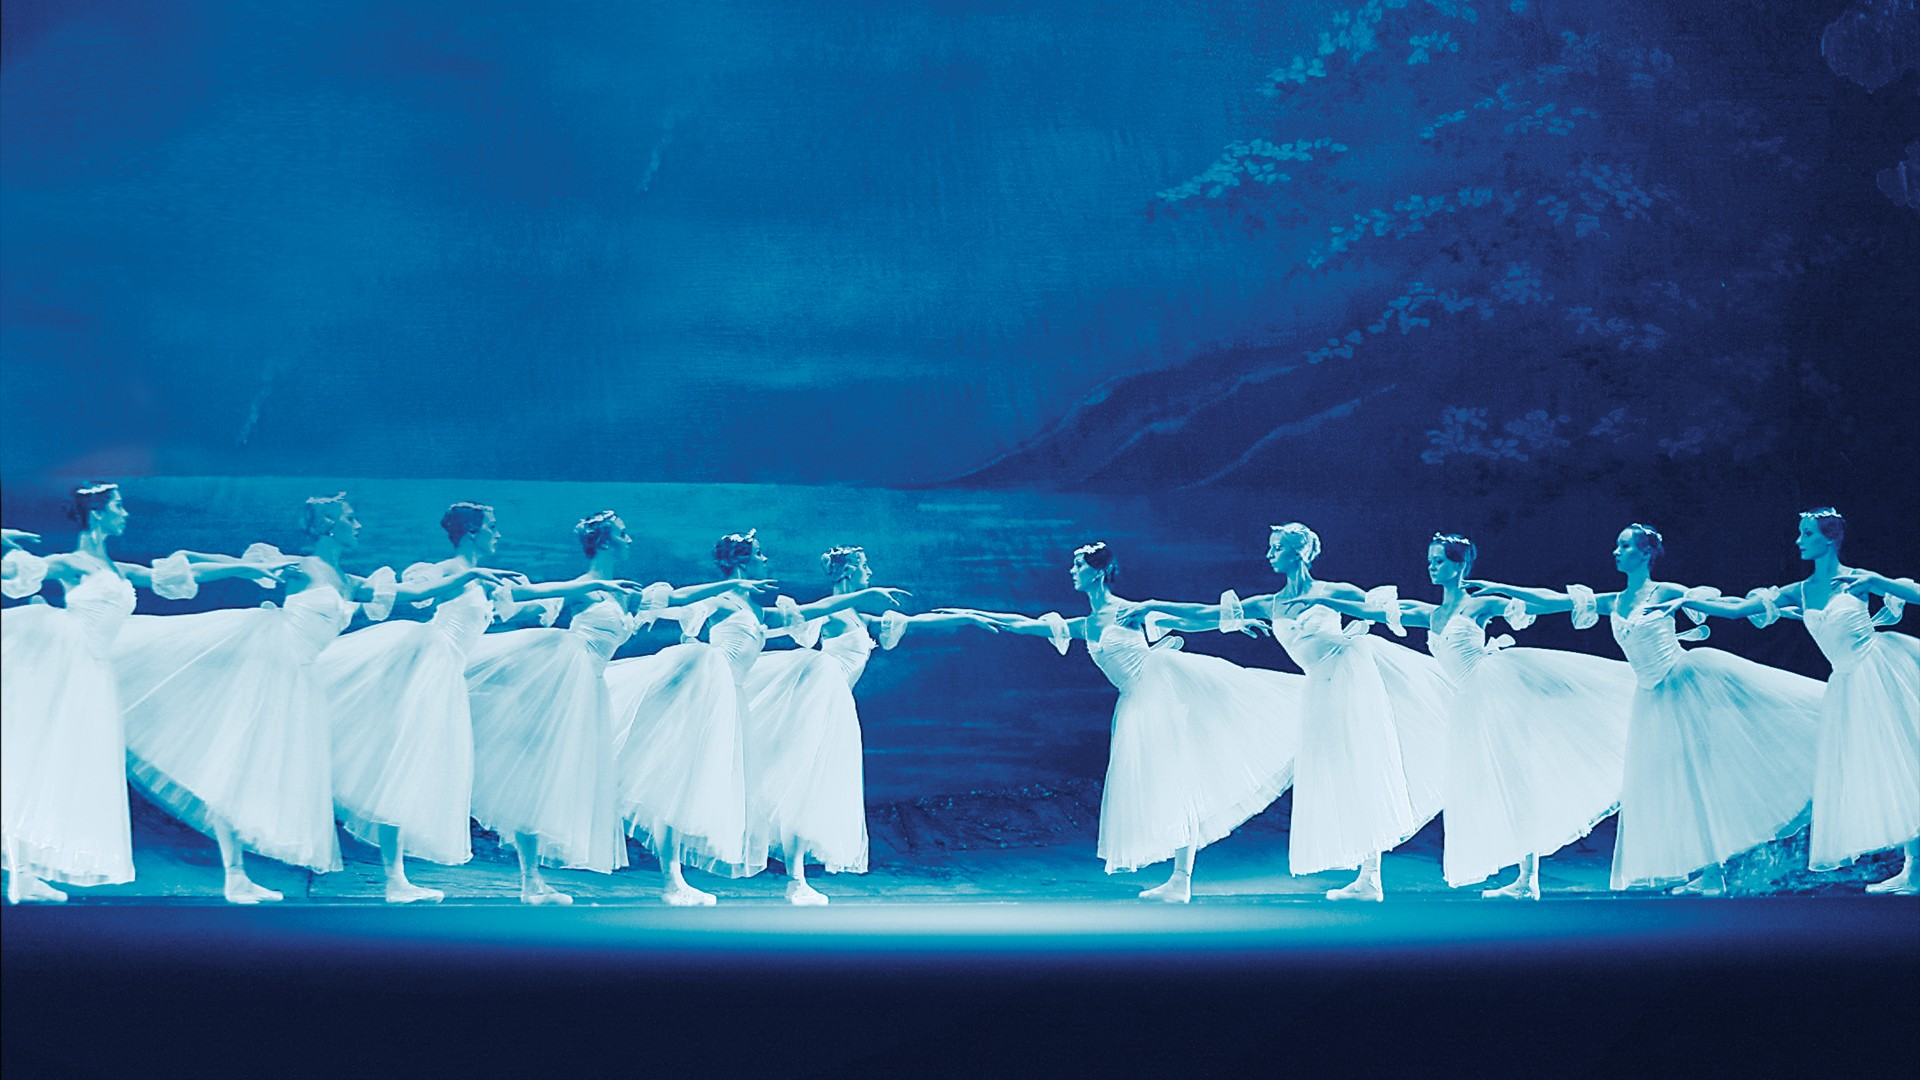 THE VII INTERNATIONAL FESTIVAL OF THE BALLET. Giselle